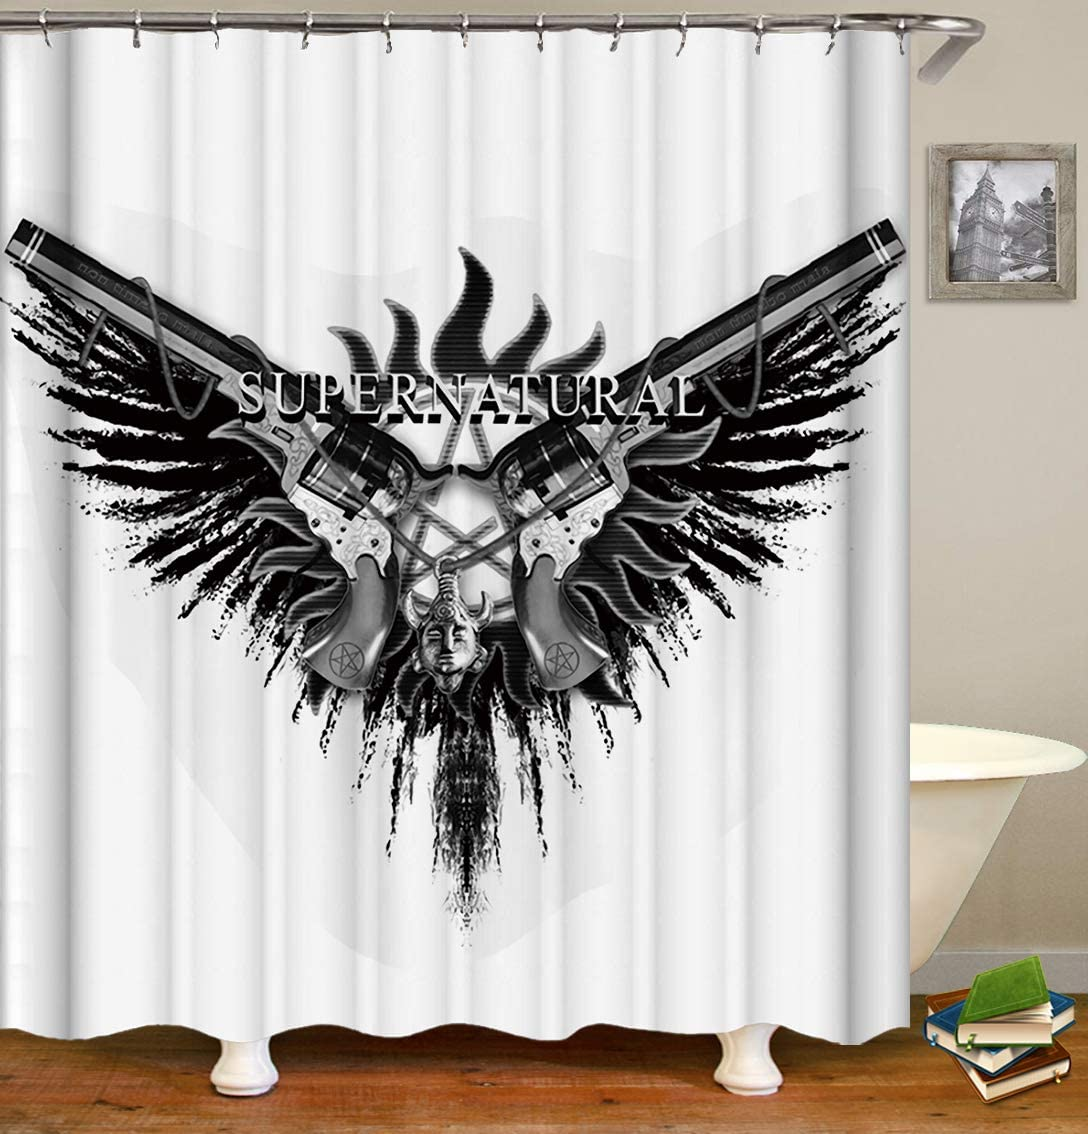 Bartori Home Decor Durable Shower Curtain with 12pcs Hooks in Package Two Guns with a Five-Pointed Star Logo Super Natural Waterproof Polyester Fabric Bath Curtain Size 71''X71''